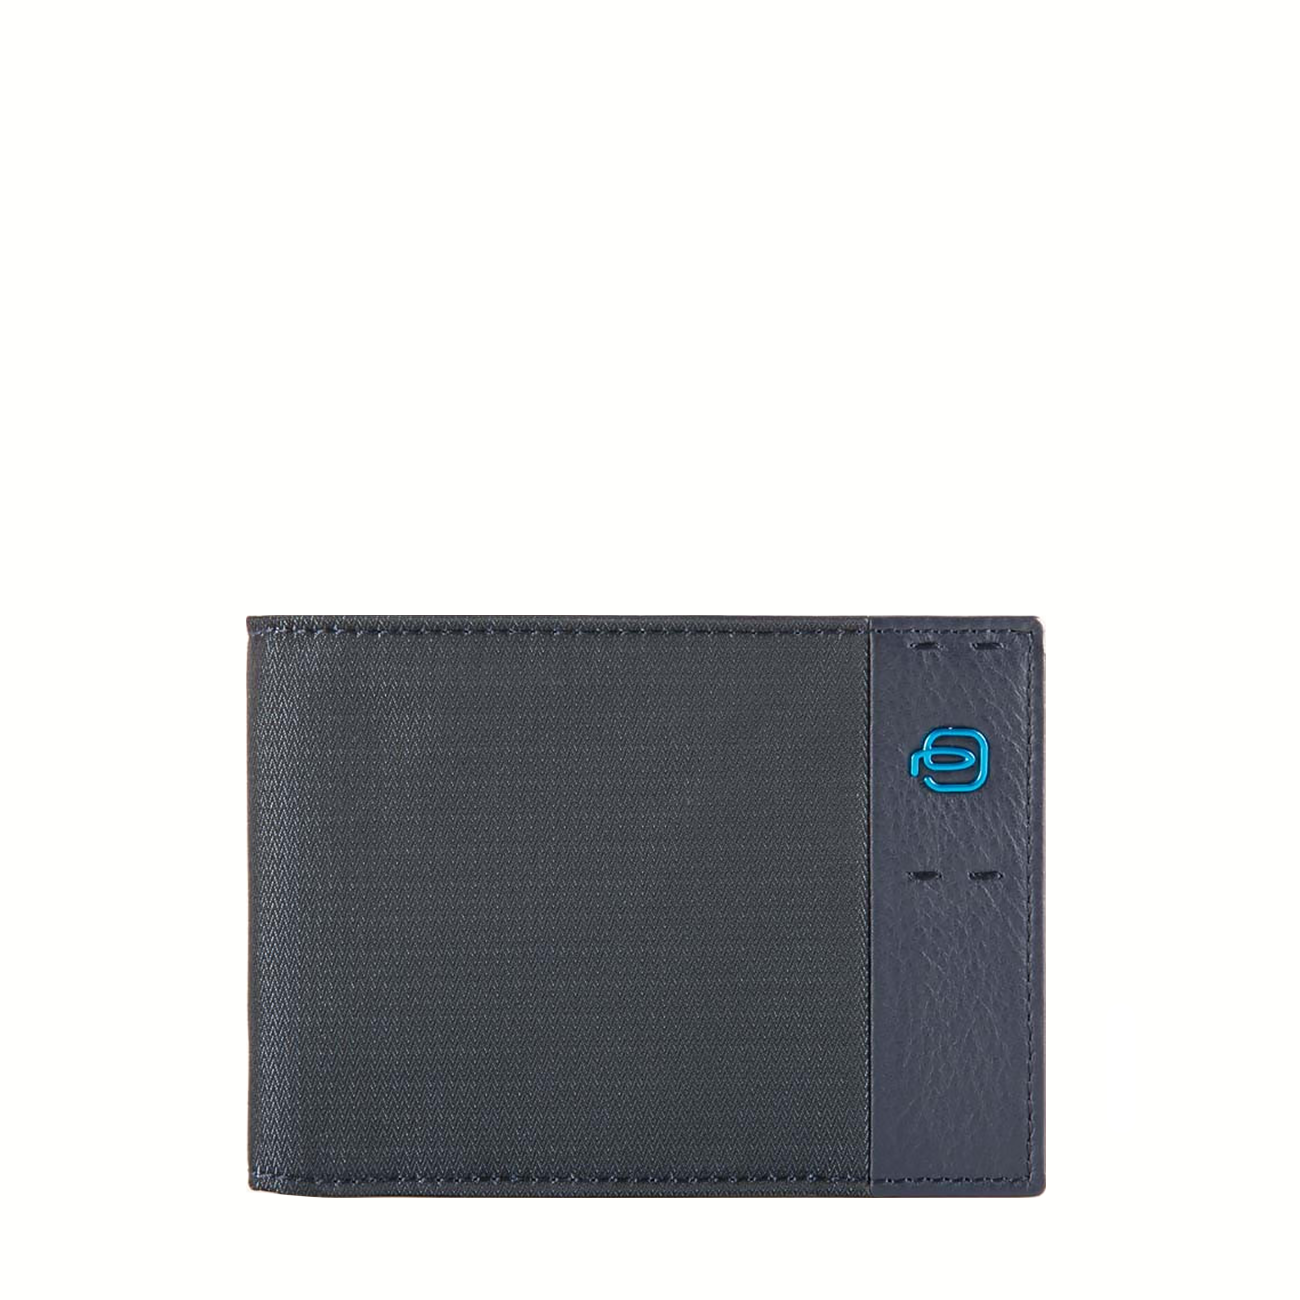 P16 CREDIT CARD WALLET WITH FLIP UP ID